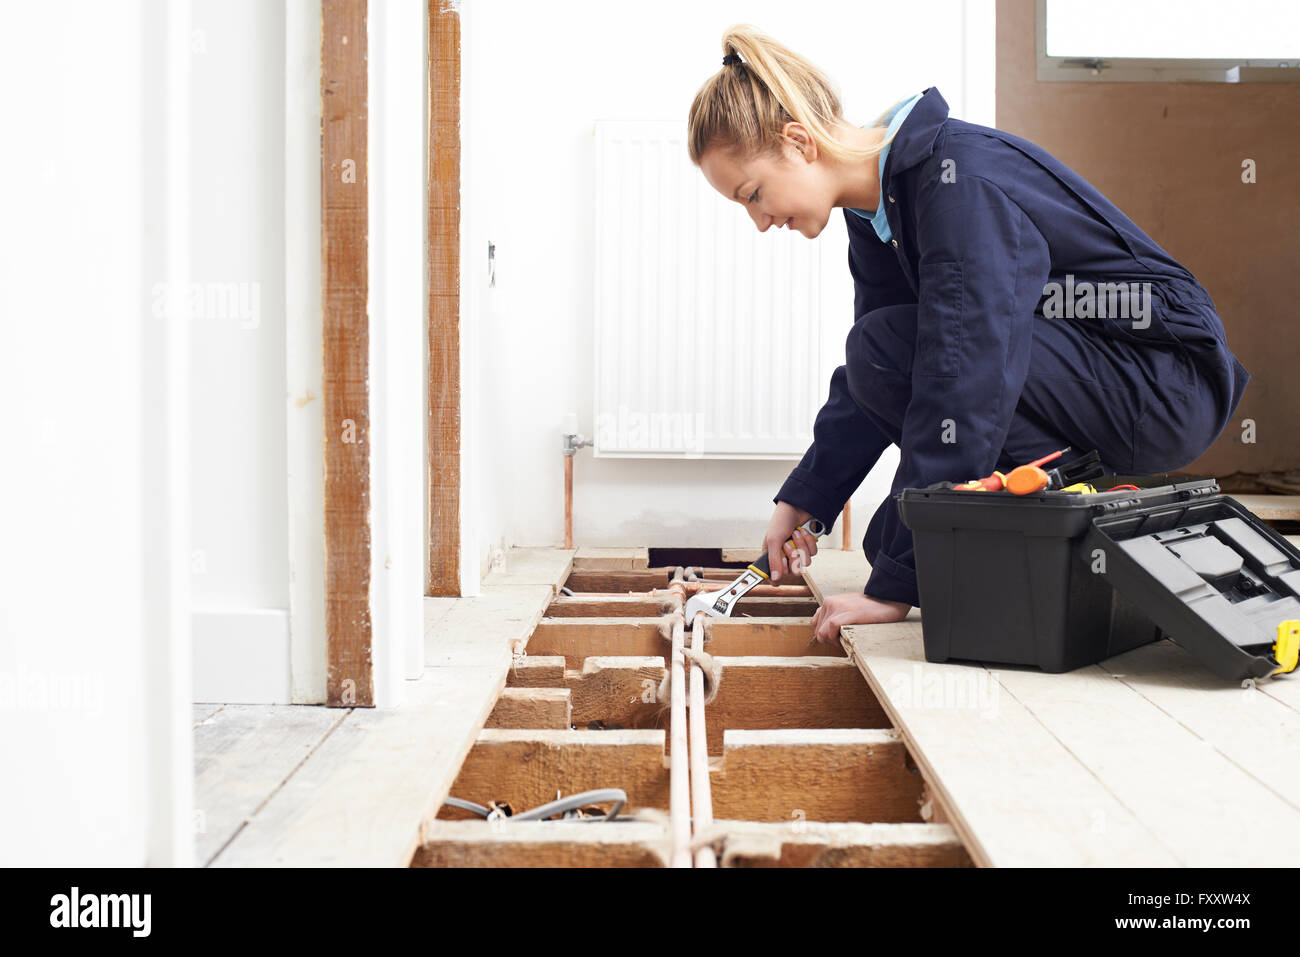 Female Plumber Fitting Central Heating System - Stock Image